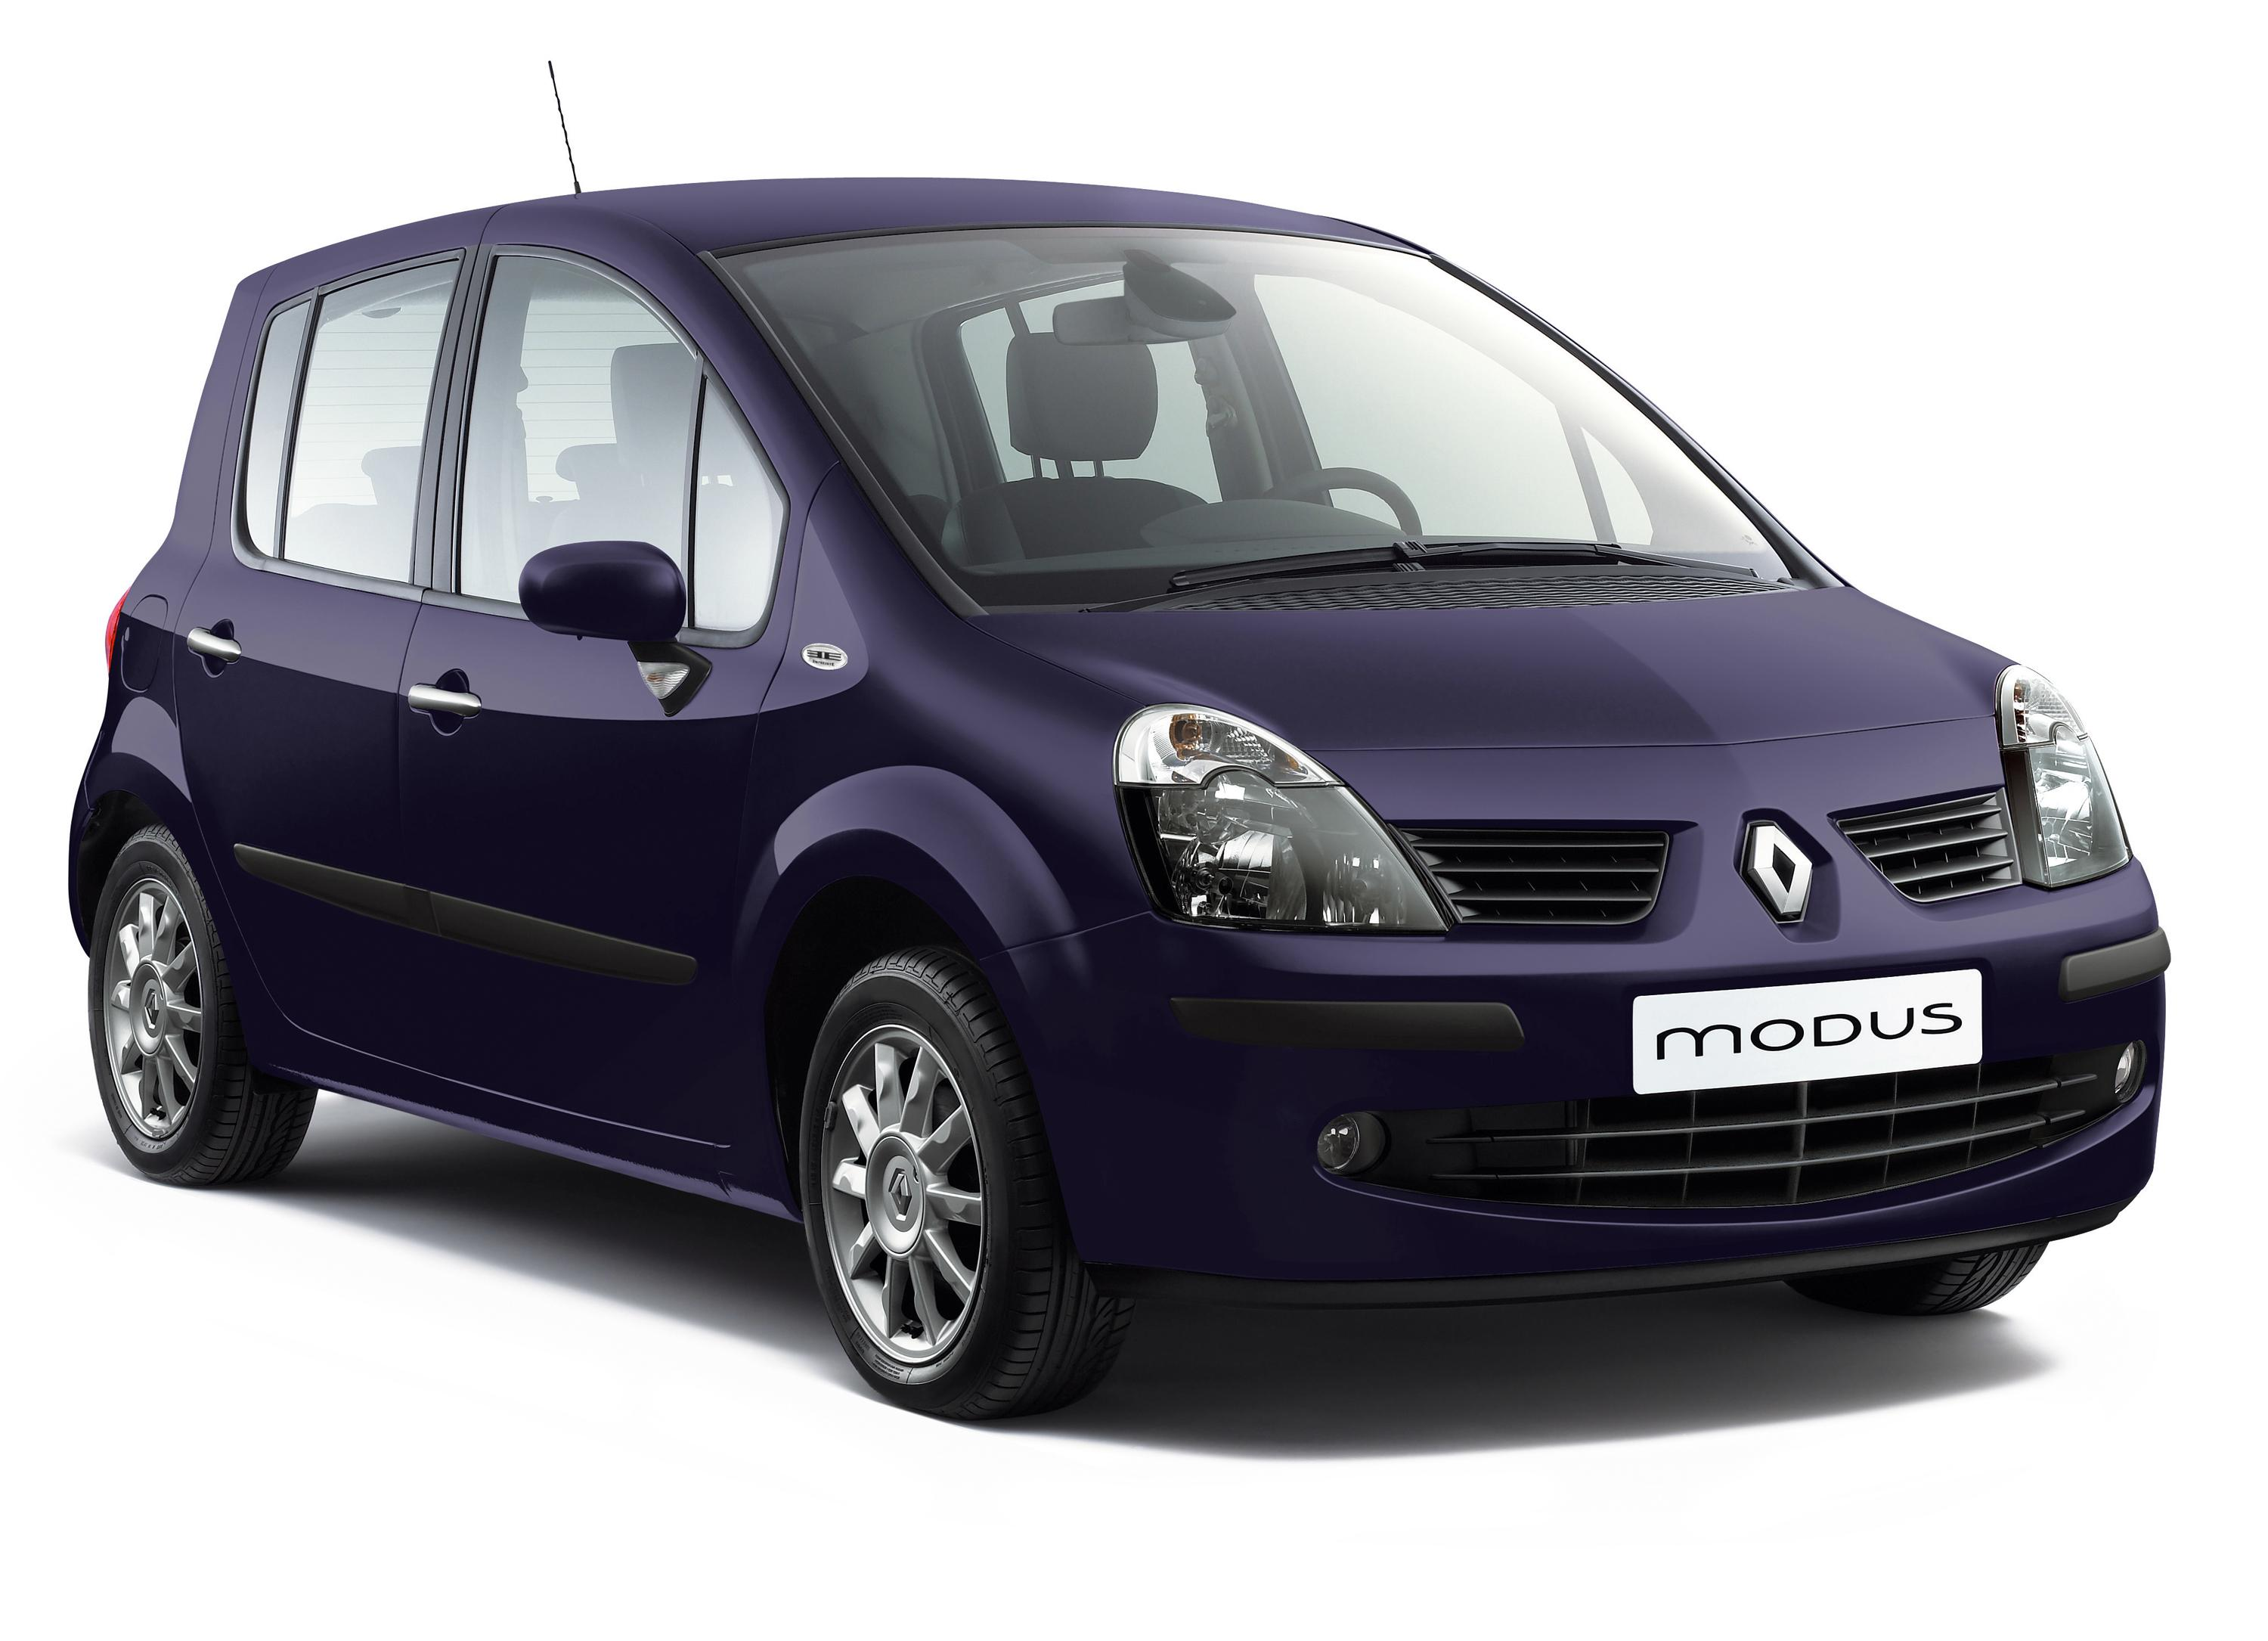 2007 renault modus empreinte review top speed. Black Bedroom Furniture Sets. Home Design Ideas